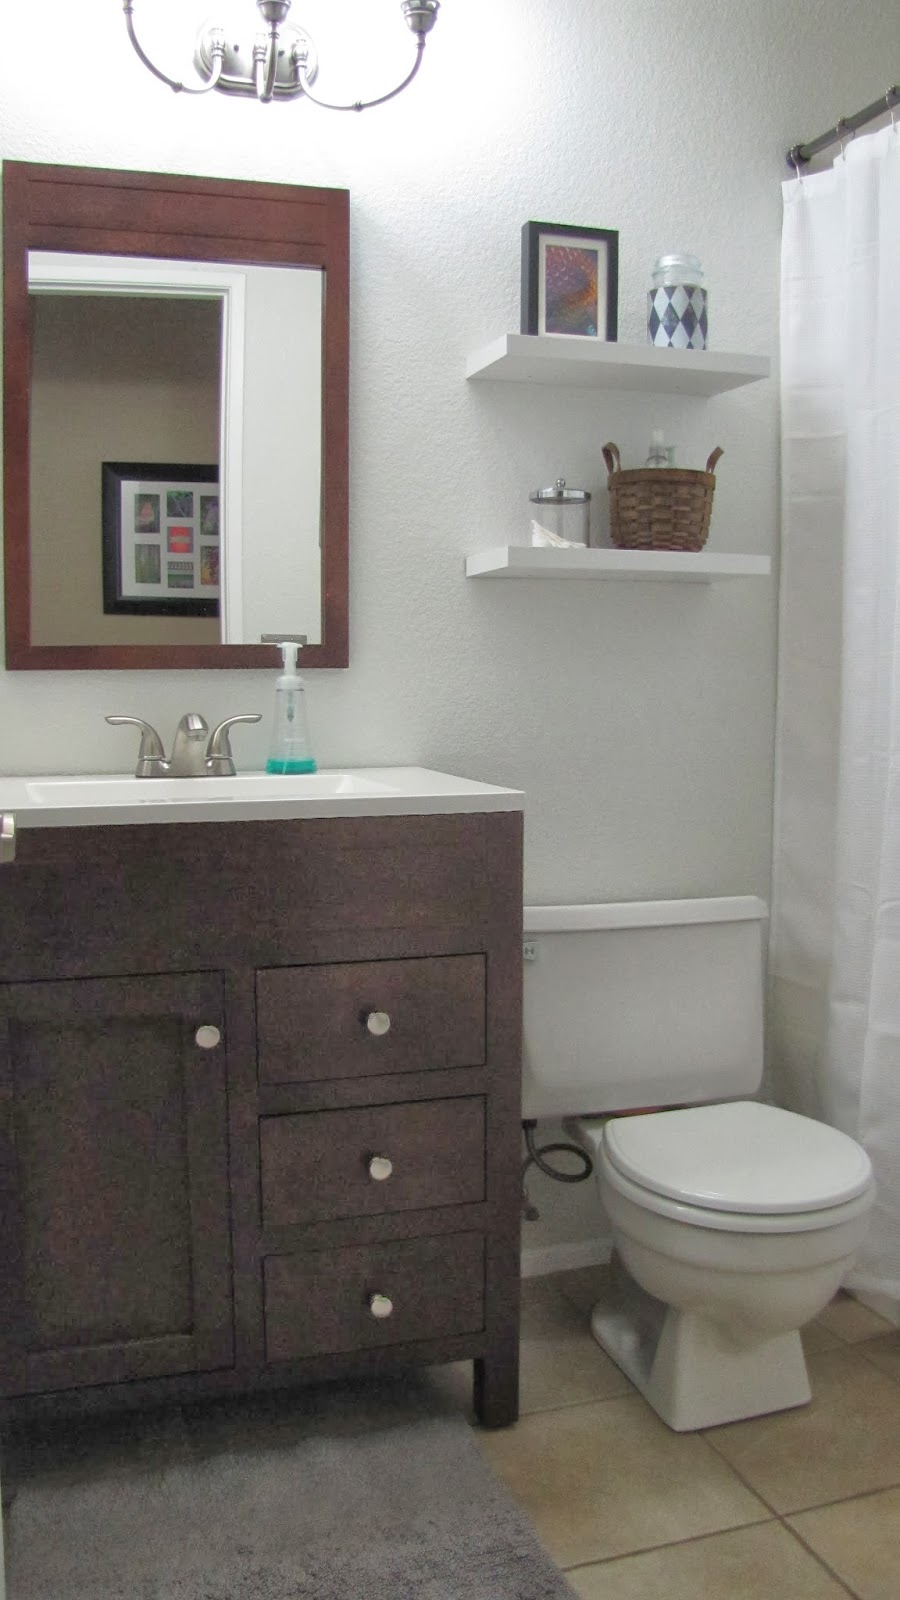 http://adventuresindiy1759.blogspot.com/2014/01/hall-bathroom-reveal.html